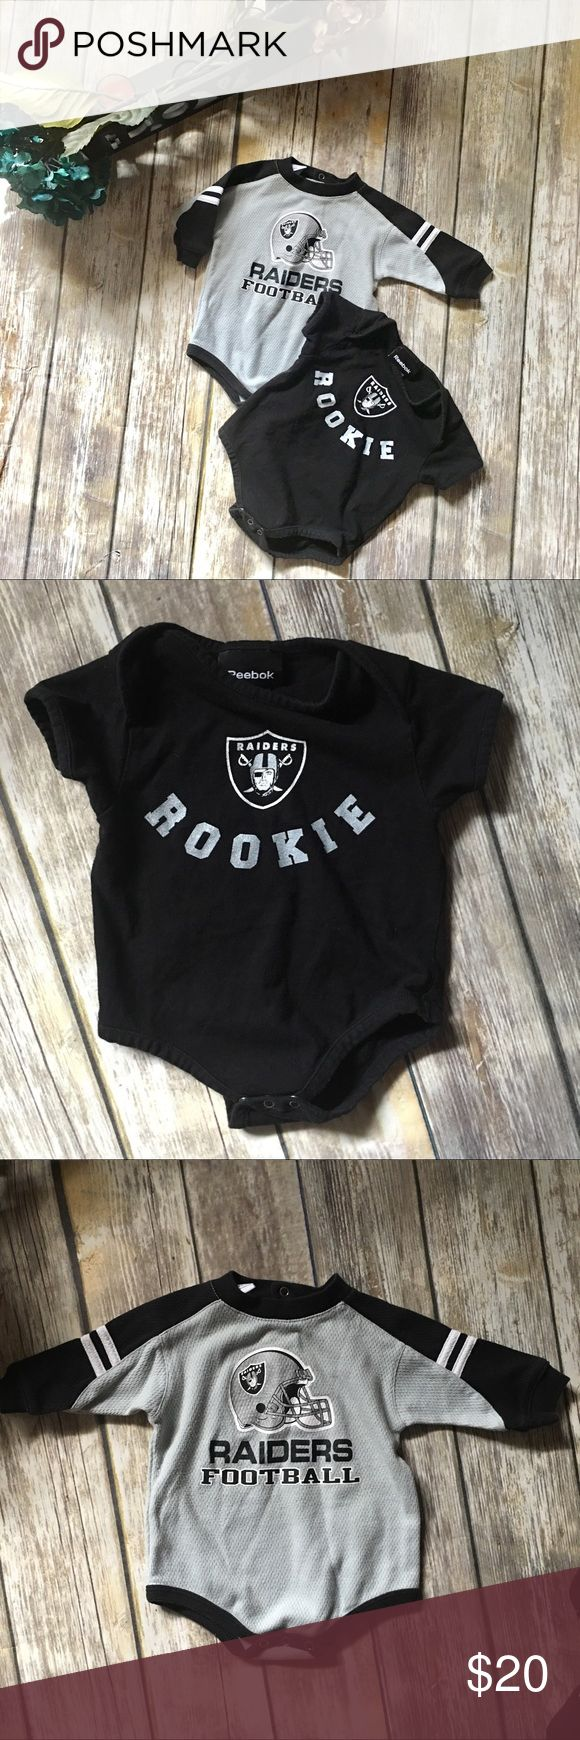 NFL Raiders Football Bundle Comes with one thermal long sleeve NFL raiders onesie and one short sleeve Reebok onesie. Both are size 6 to 9 months. In excellent used condition. Reebok One Pieces Bodysuits